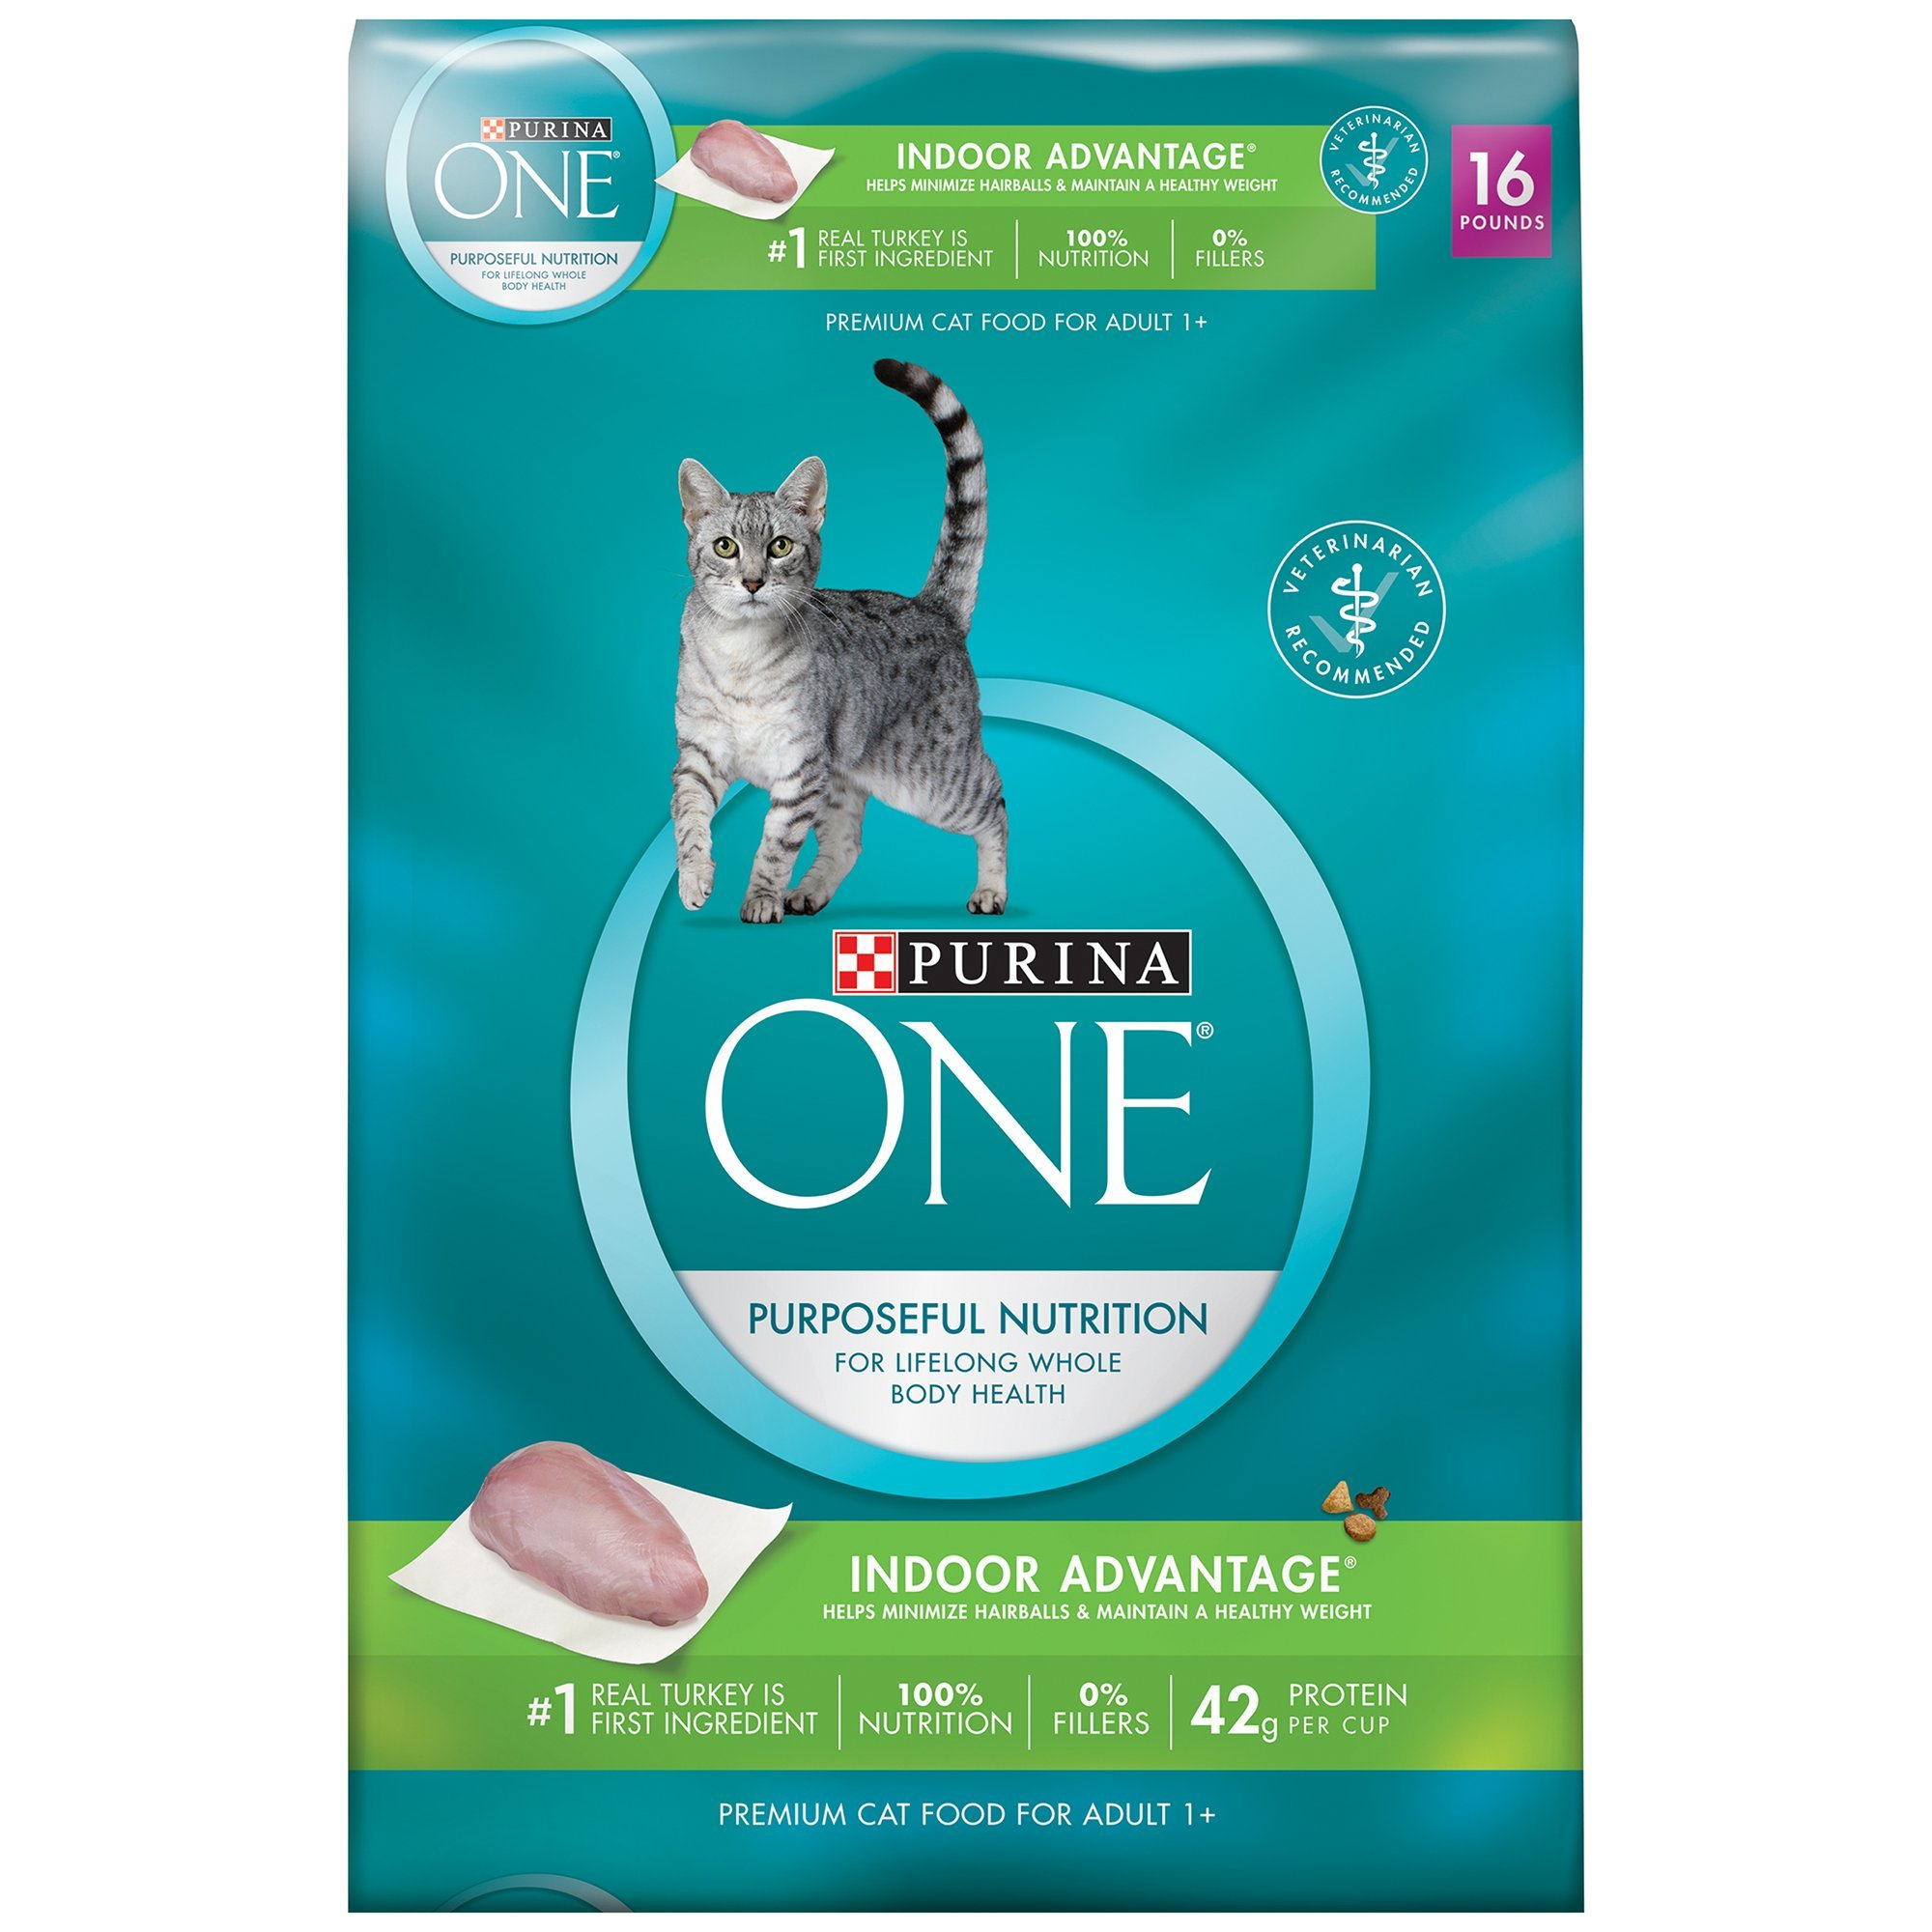 purina one indoor advantage cat food review